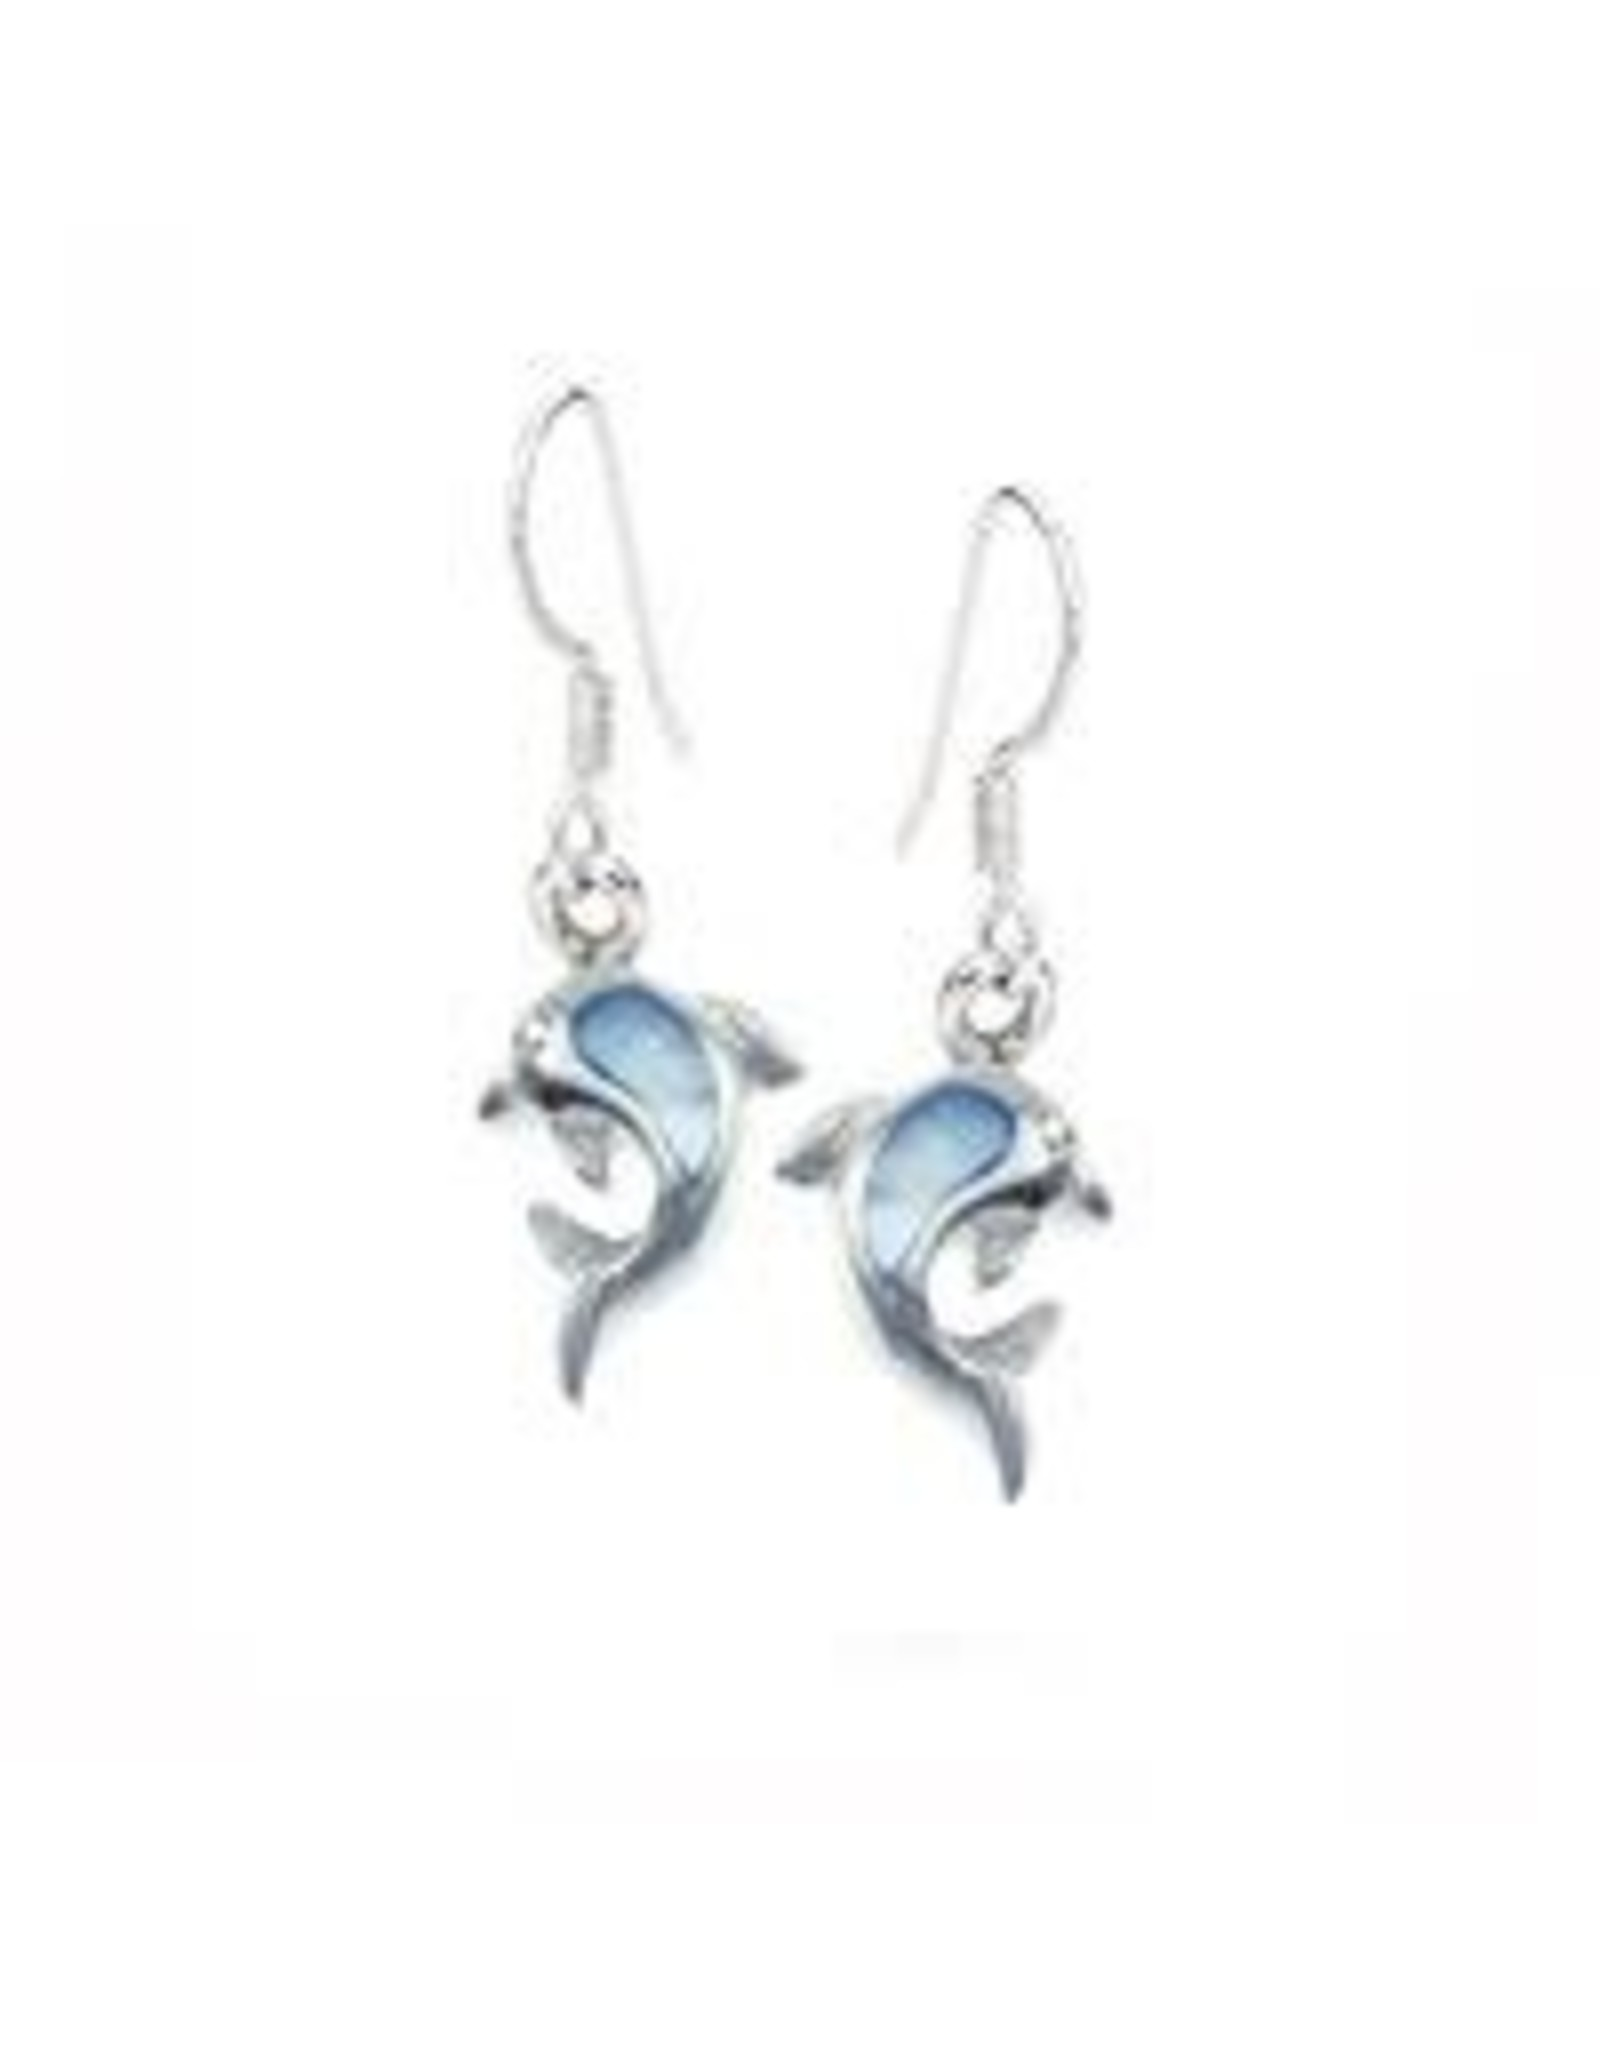 Stones & Silver Blue Mother of Pearl Dolphin Drop Earrings 2.5cm